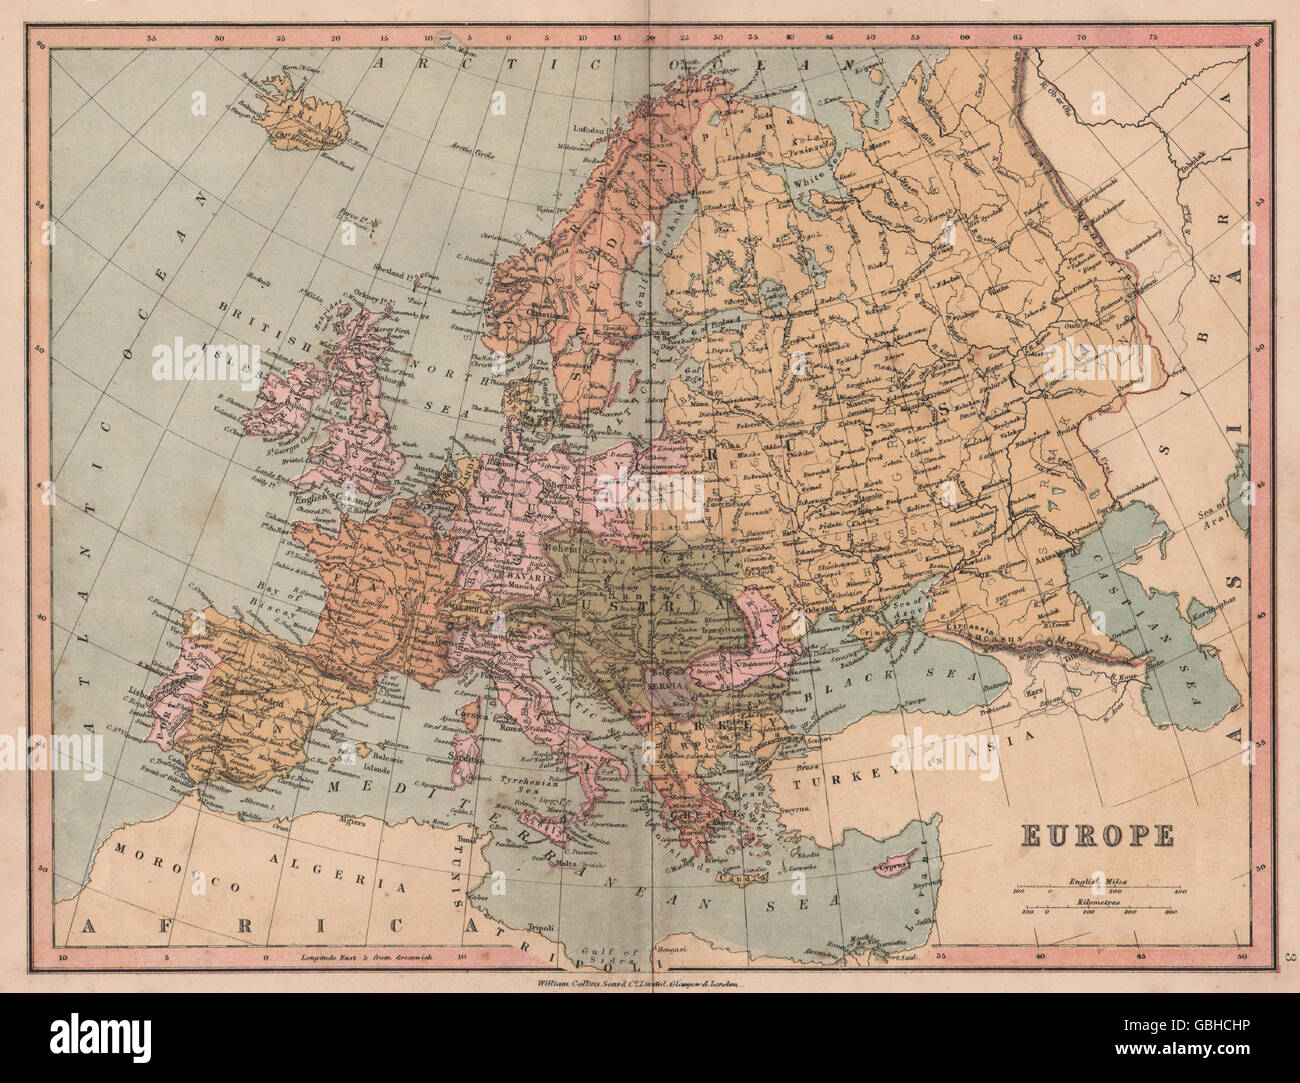 Europe political united germany marked as prussia collins 1880 united germany marked as prussia collins 1880 antique map gumiabroncs Image collections